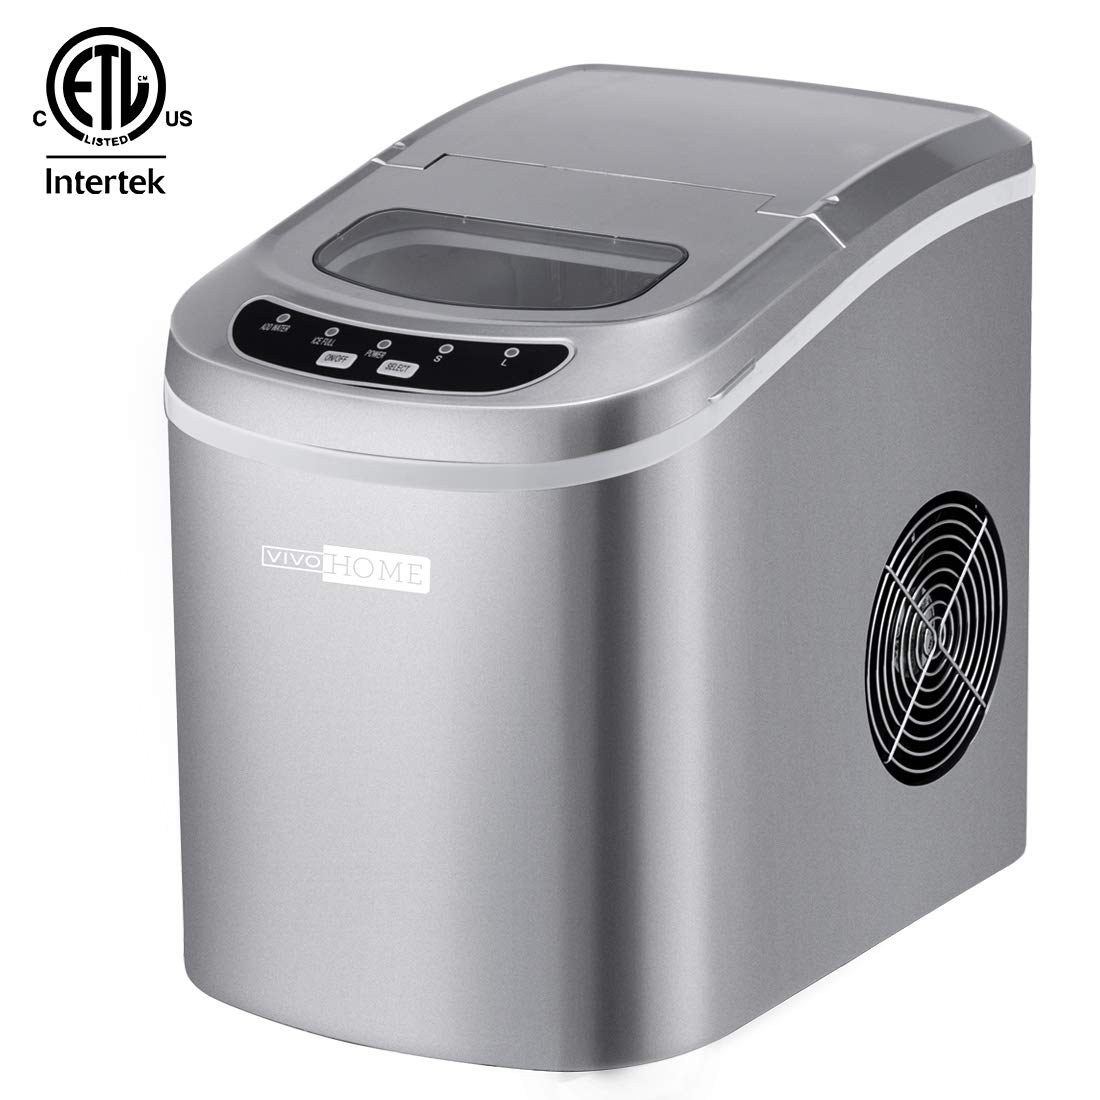 VIVOHOME Portable Electric Automatic Countertop Ice Cube Maker Machine 26lbs/day Silver ETL Listed